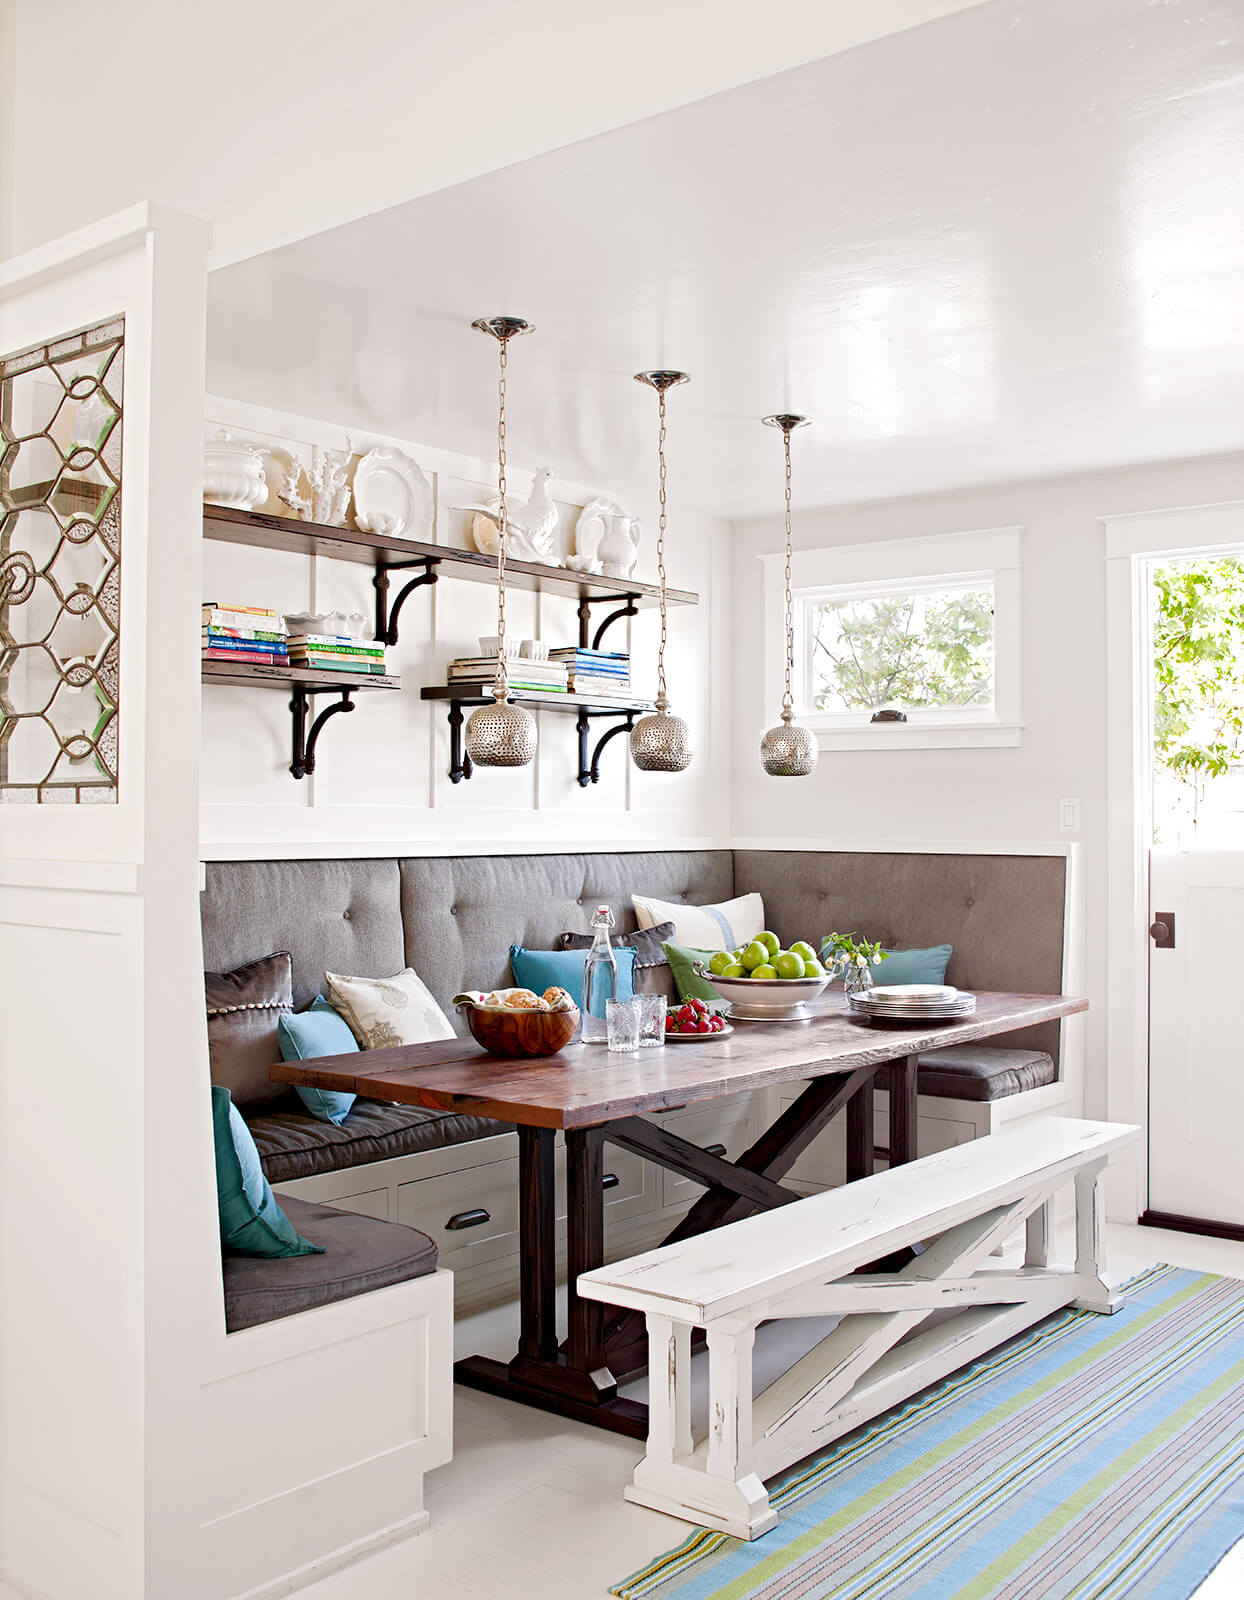 MIDDLE LEG DINING TABLE DESIGN IDEAS FOR SMALL SPACE